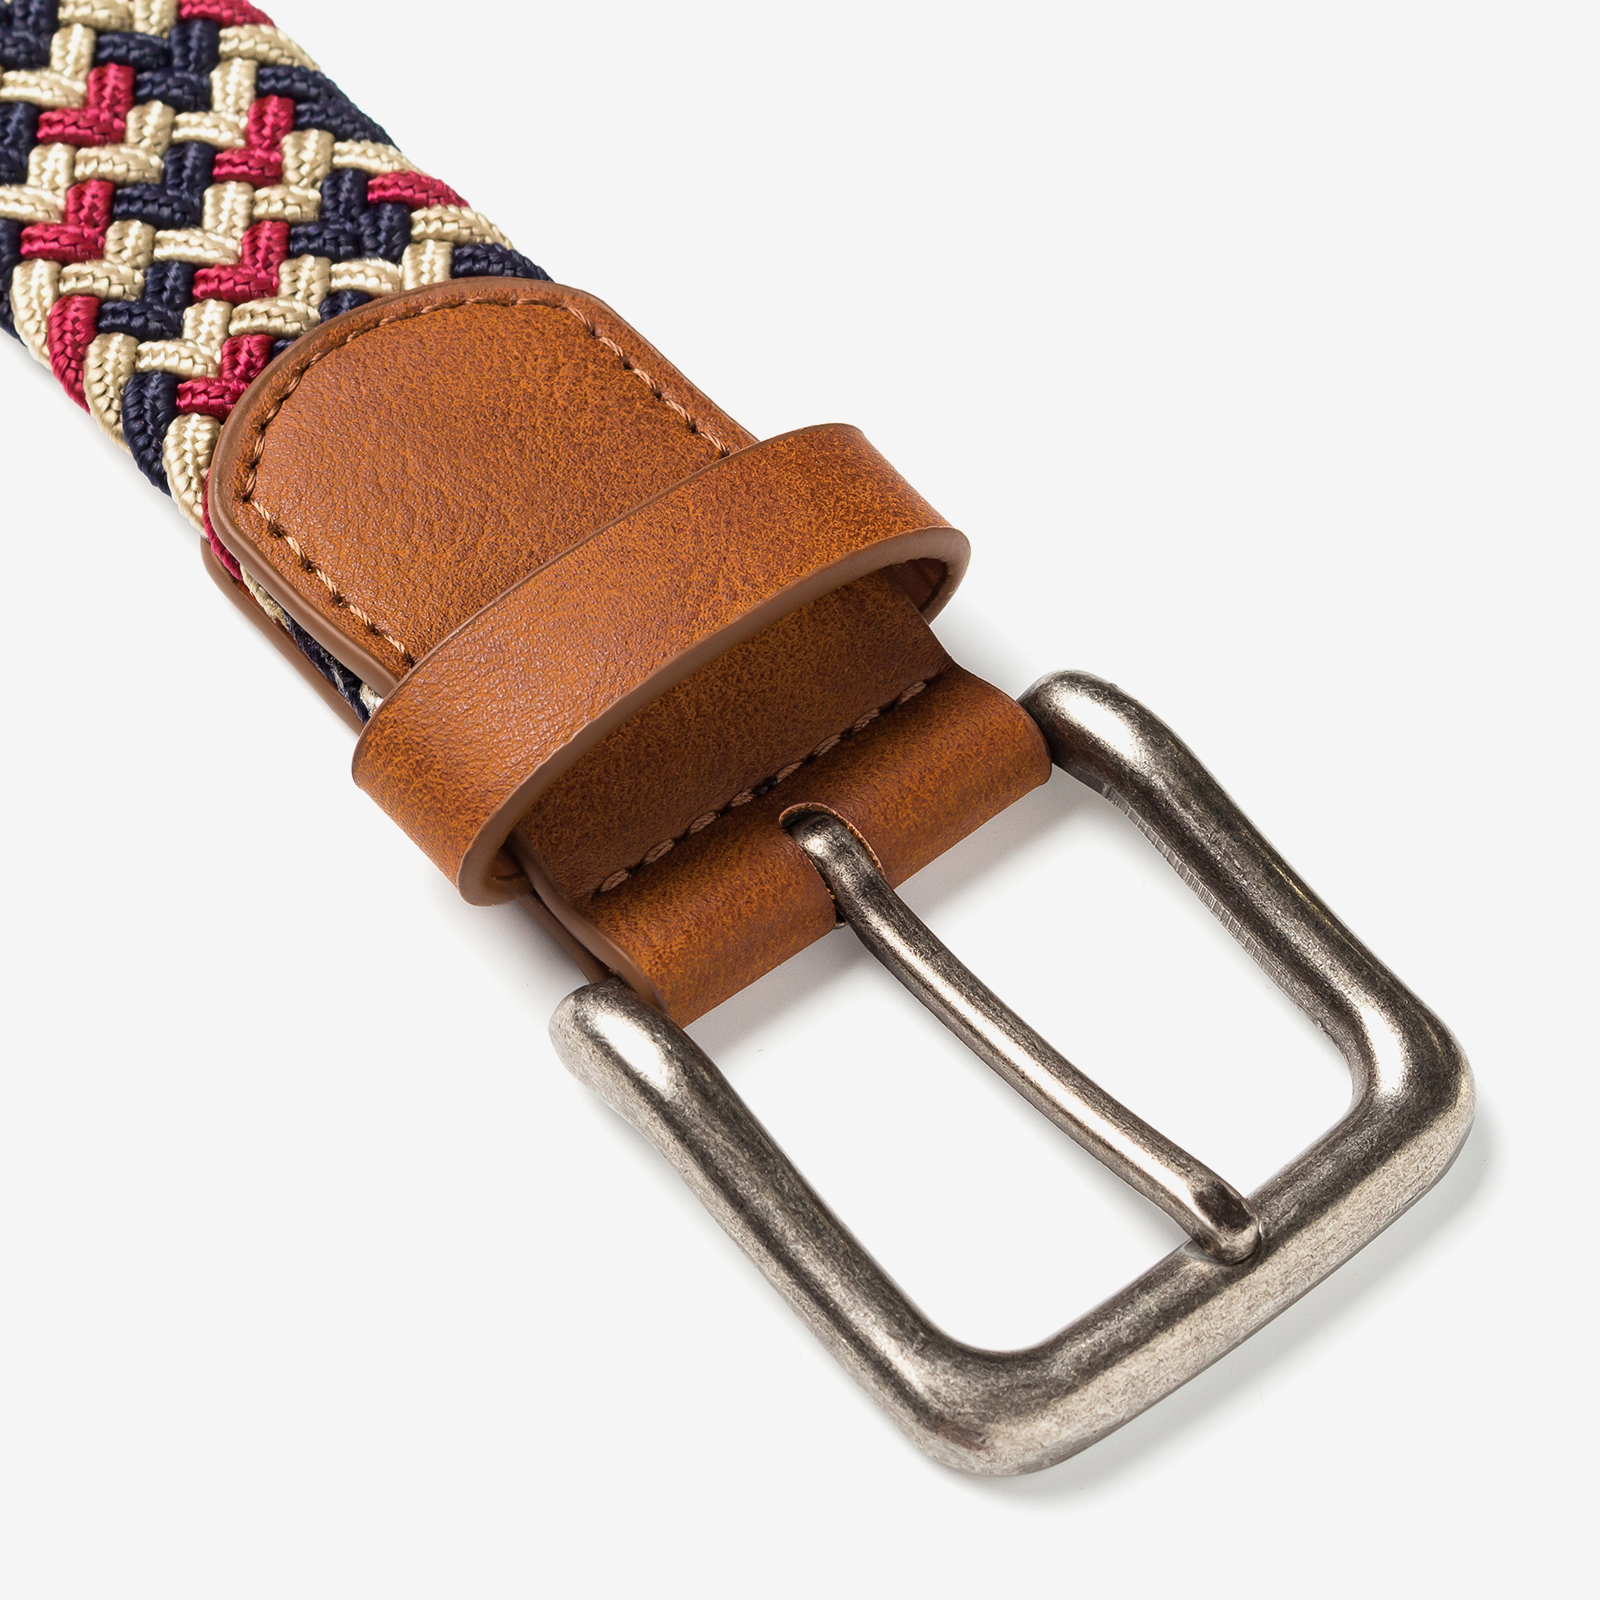 Belt close up product image